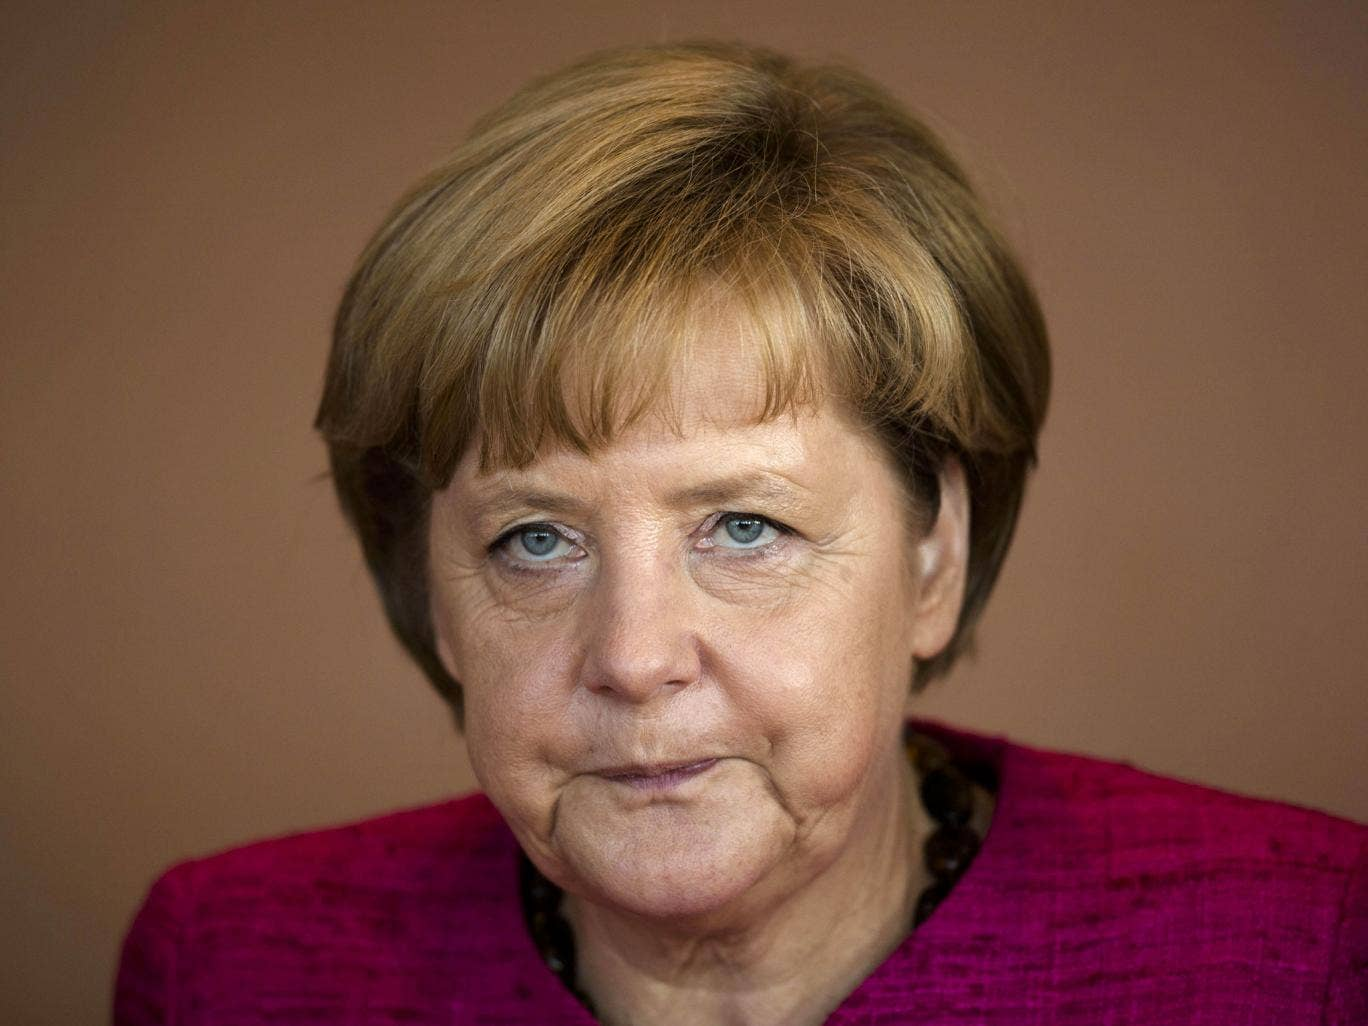 The German media suggested the Chancellor's ageing cross-country skis may have contributed to her accident